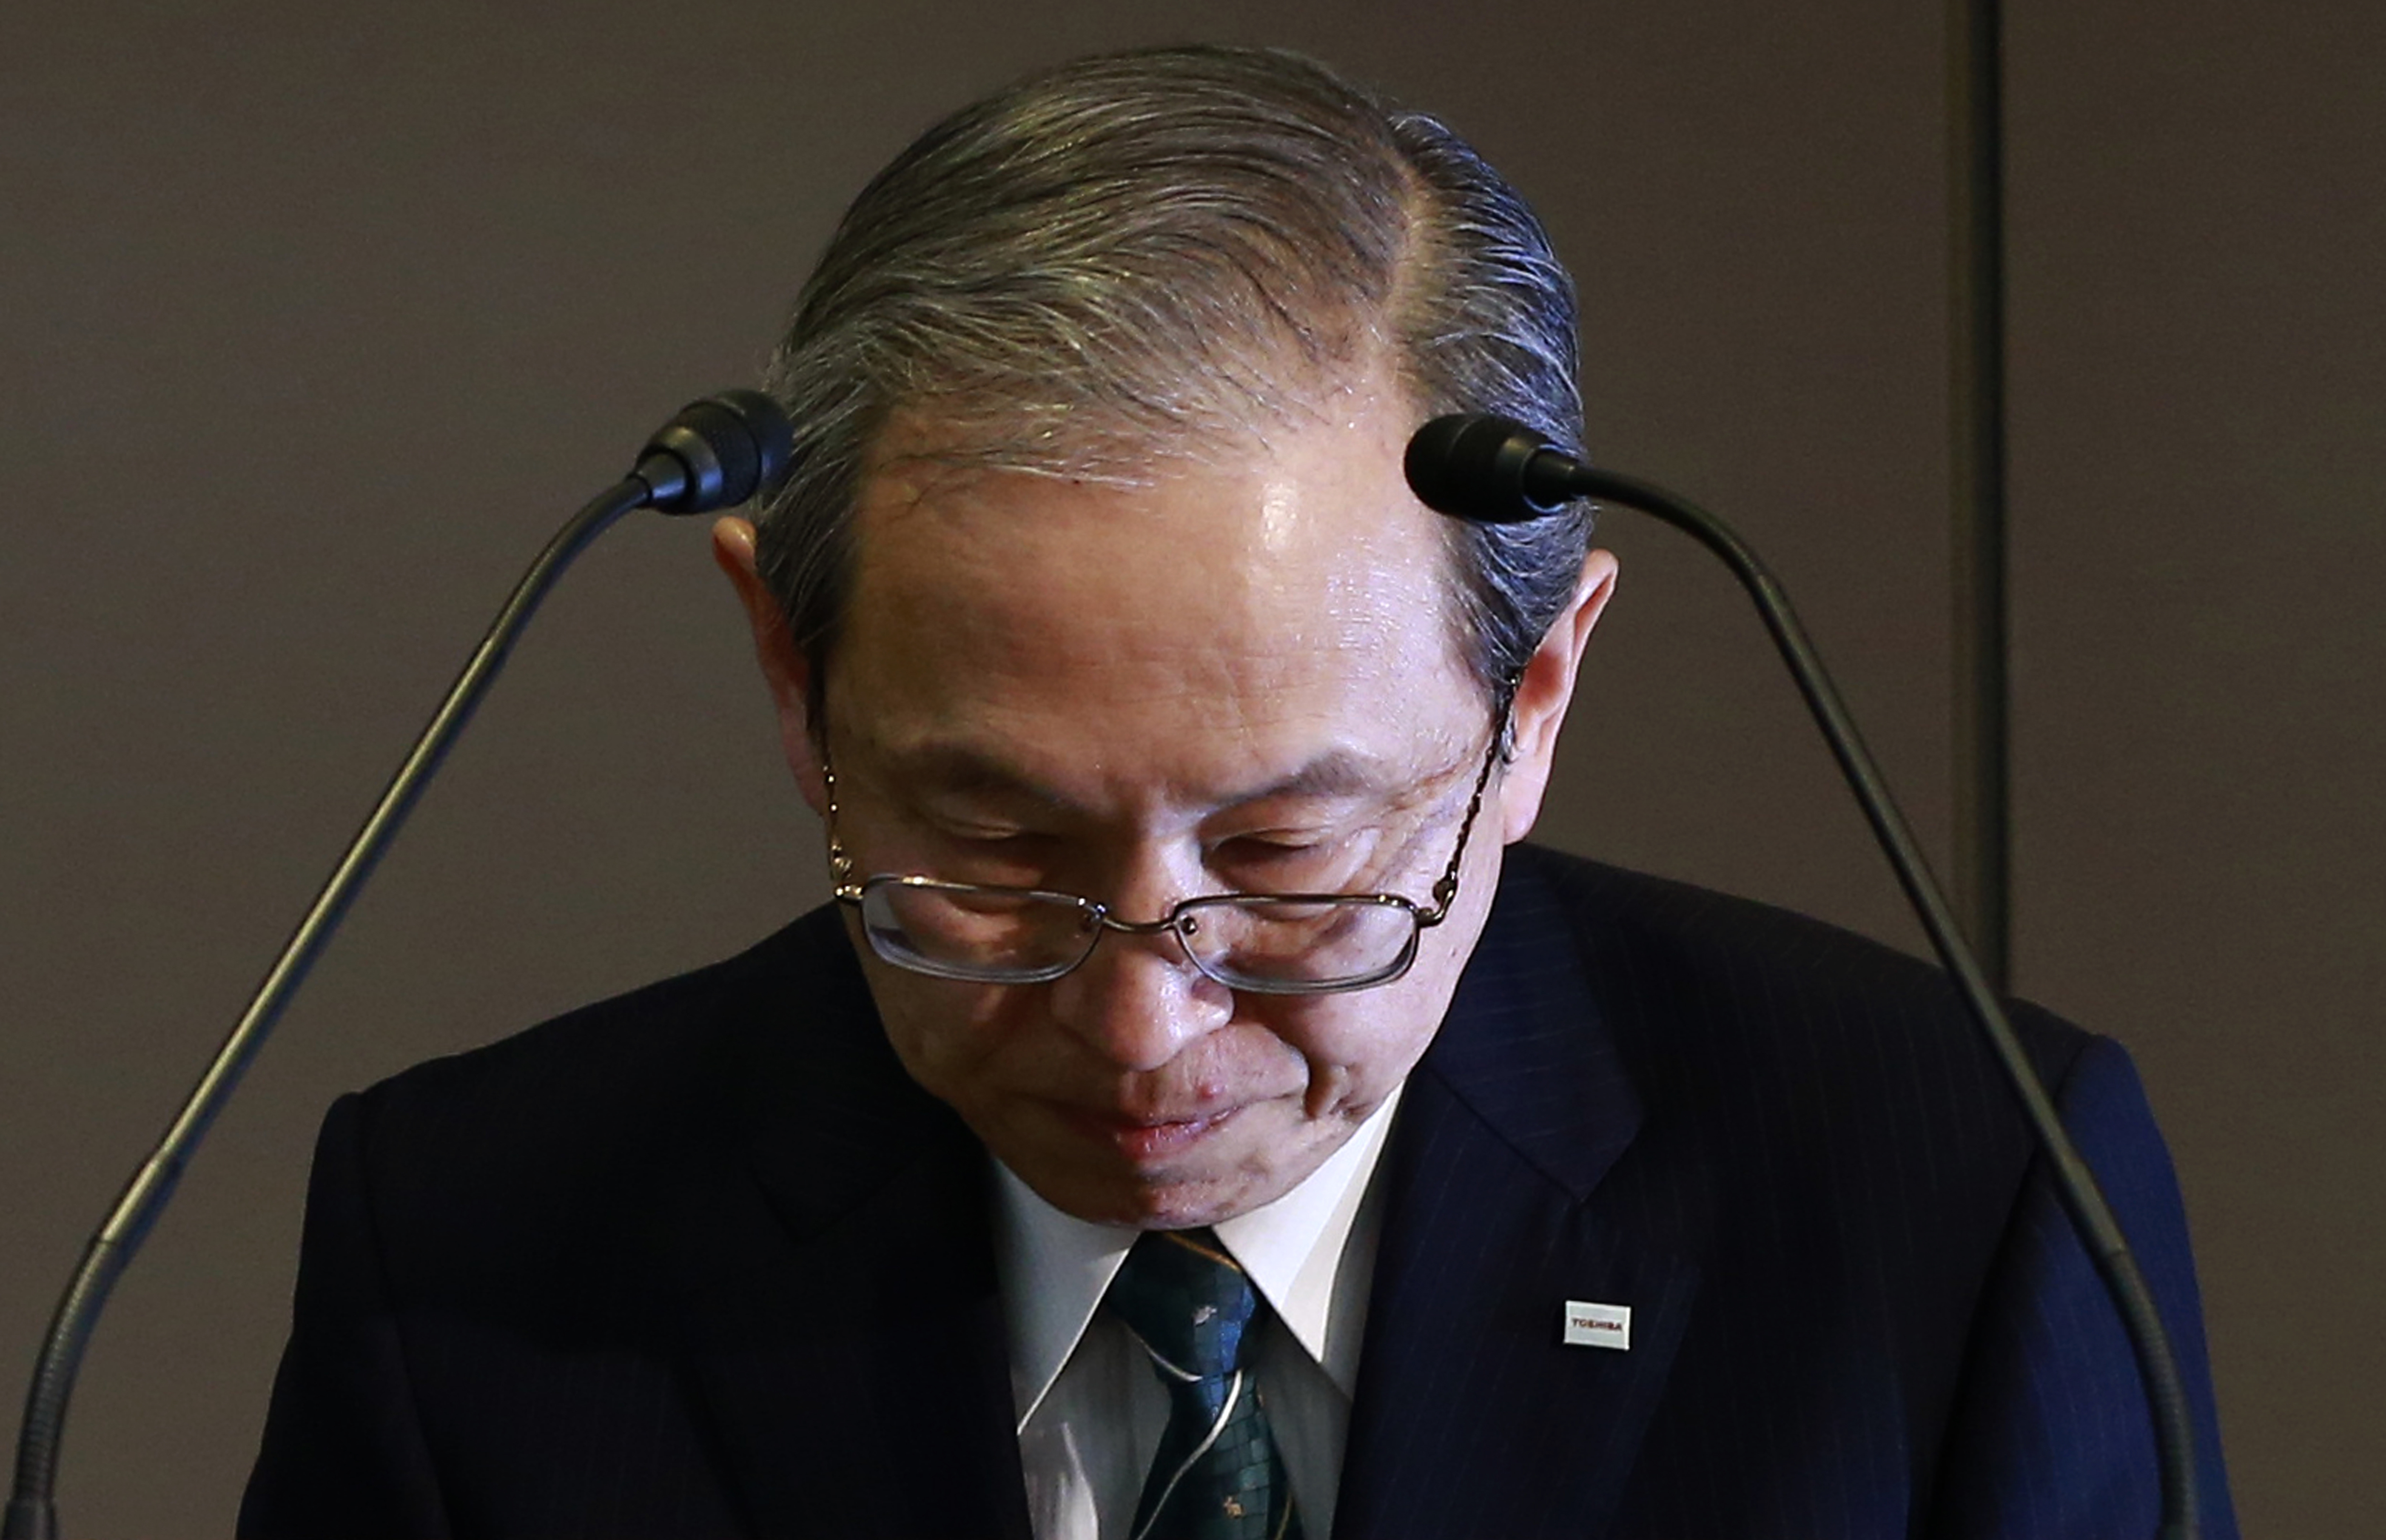 Japan Toshiba Westinghouse Toshiba Corp. President Satoshi Tsunakawa bows during a press conference at the company's headquarters in Tokyo, Wednesday, March 29, 2017. Japan's embattled Toshiba said Wednesday that its U.S. nuclear unit Westinghouse Electric Co. has filed for bankruptcy protection. Toshiba said in a statement that it filed the chapter 11 petition in the U.S. Bankruptcy Court of New York. (AP Photo/Shizuo Kambayashi)